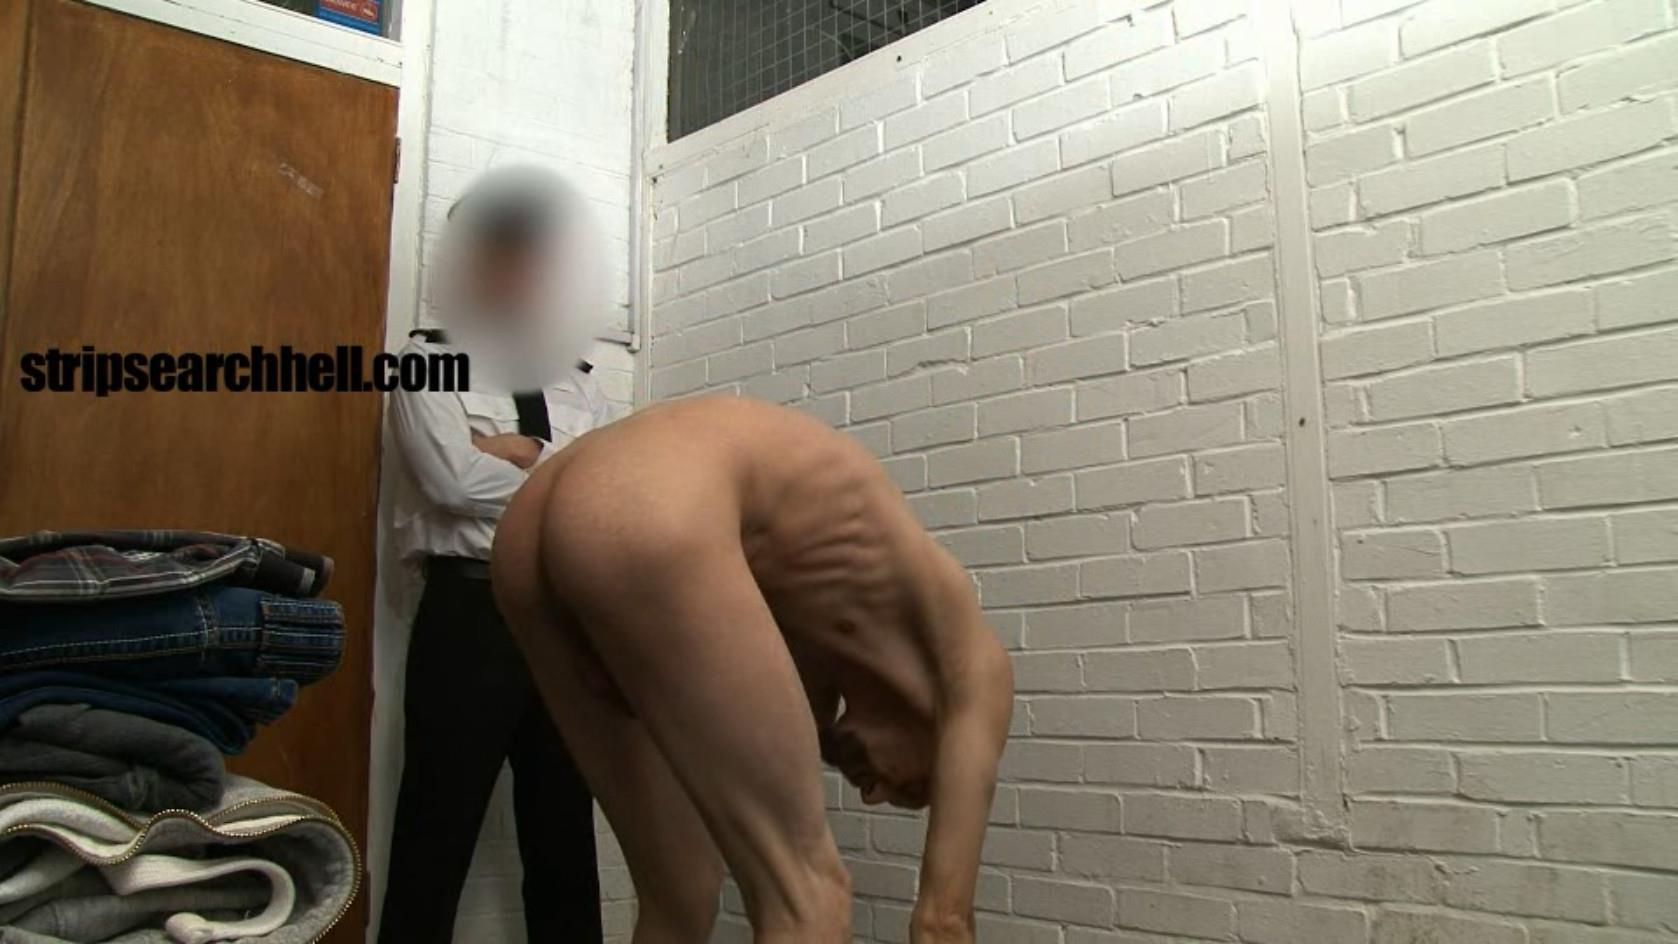 Prision Strip Search Pictures Guy With A Big Cock 06 Hidden Prison Strip Search Video And A Guy With A Big Dick